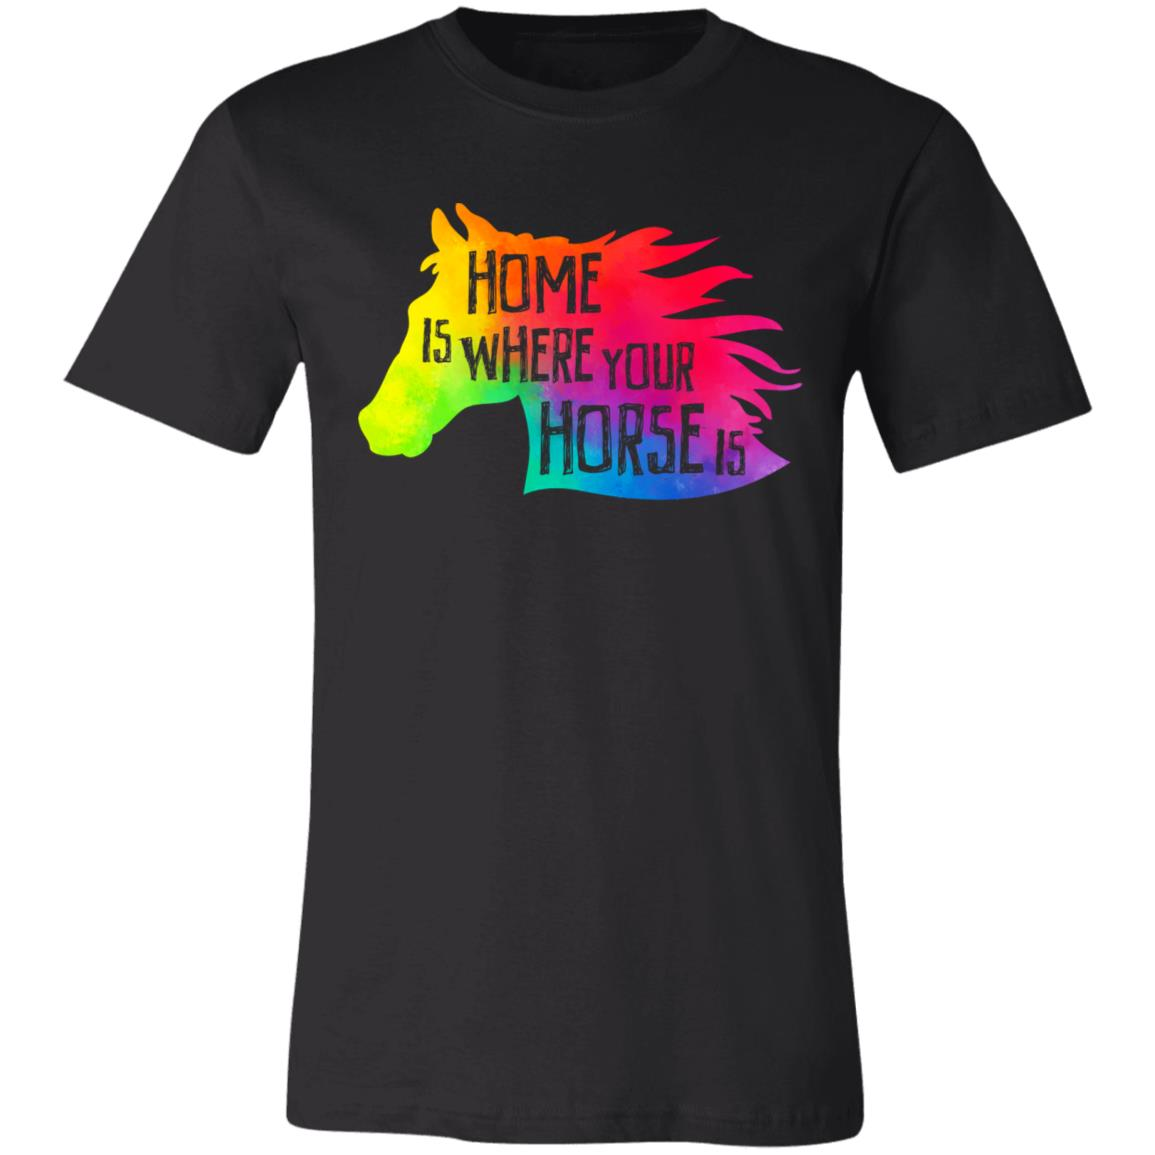 Home Is Where Yout Horse Is T-Shirt 2